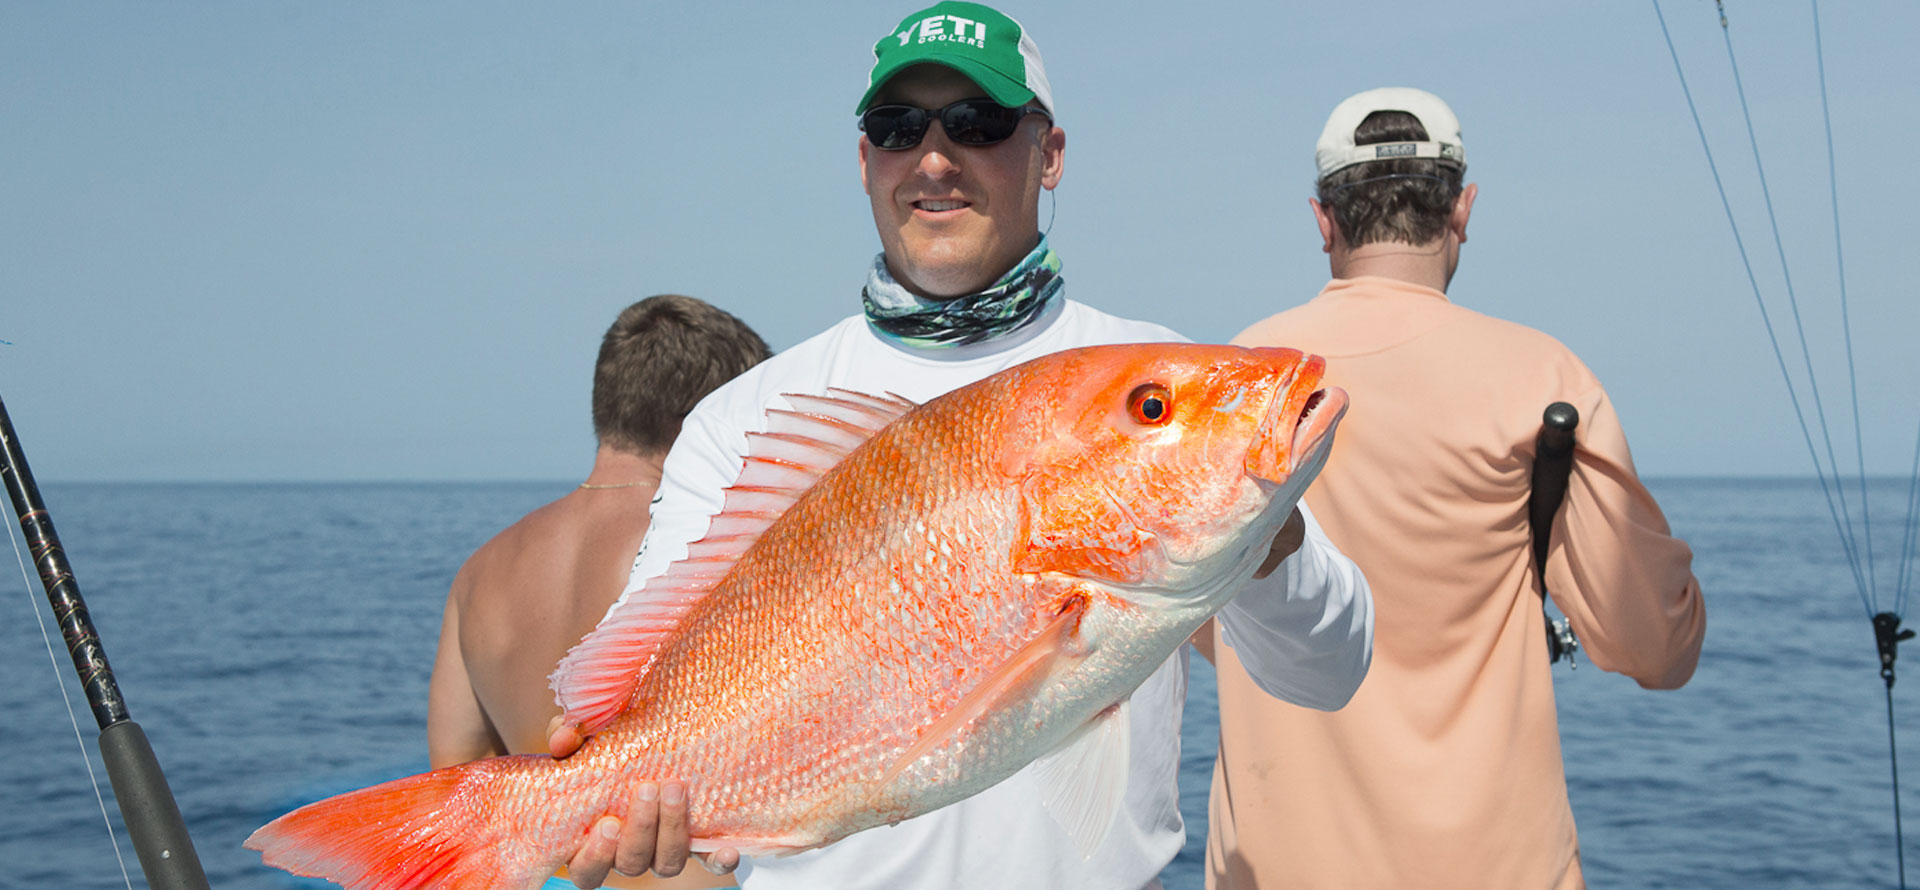 j-hook-fishing-charters-st-augustine-florida-red-snapper-limit